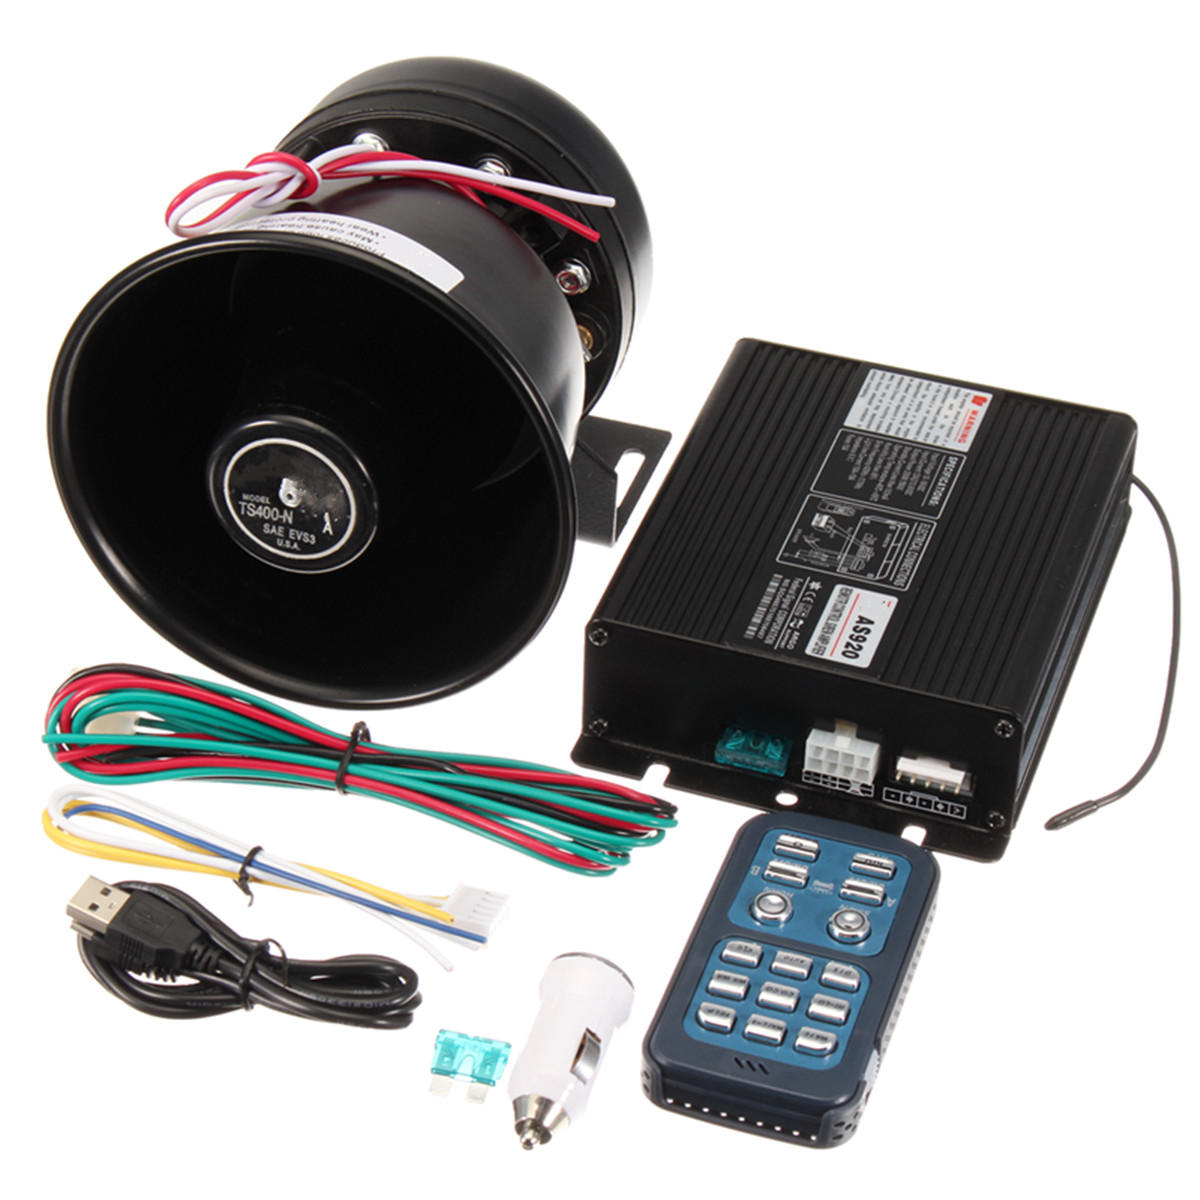 Loud Car Horn >> Dc12v 400w 8 Sound Loud Car Warning Alarm Police Siren Horn Pa